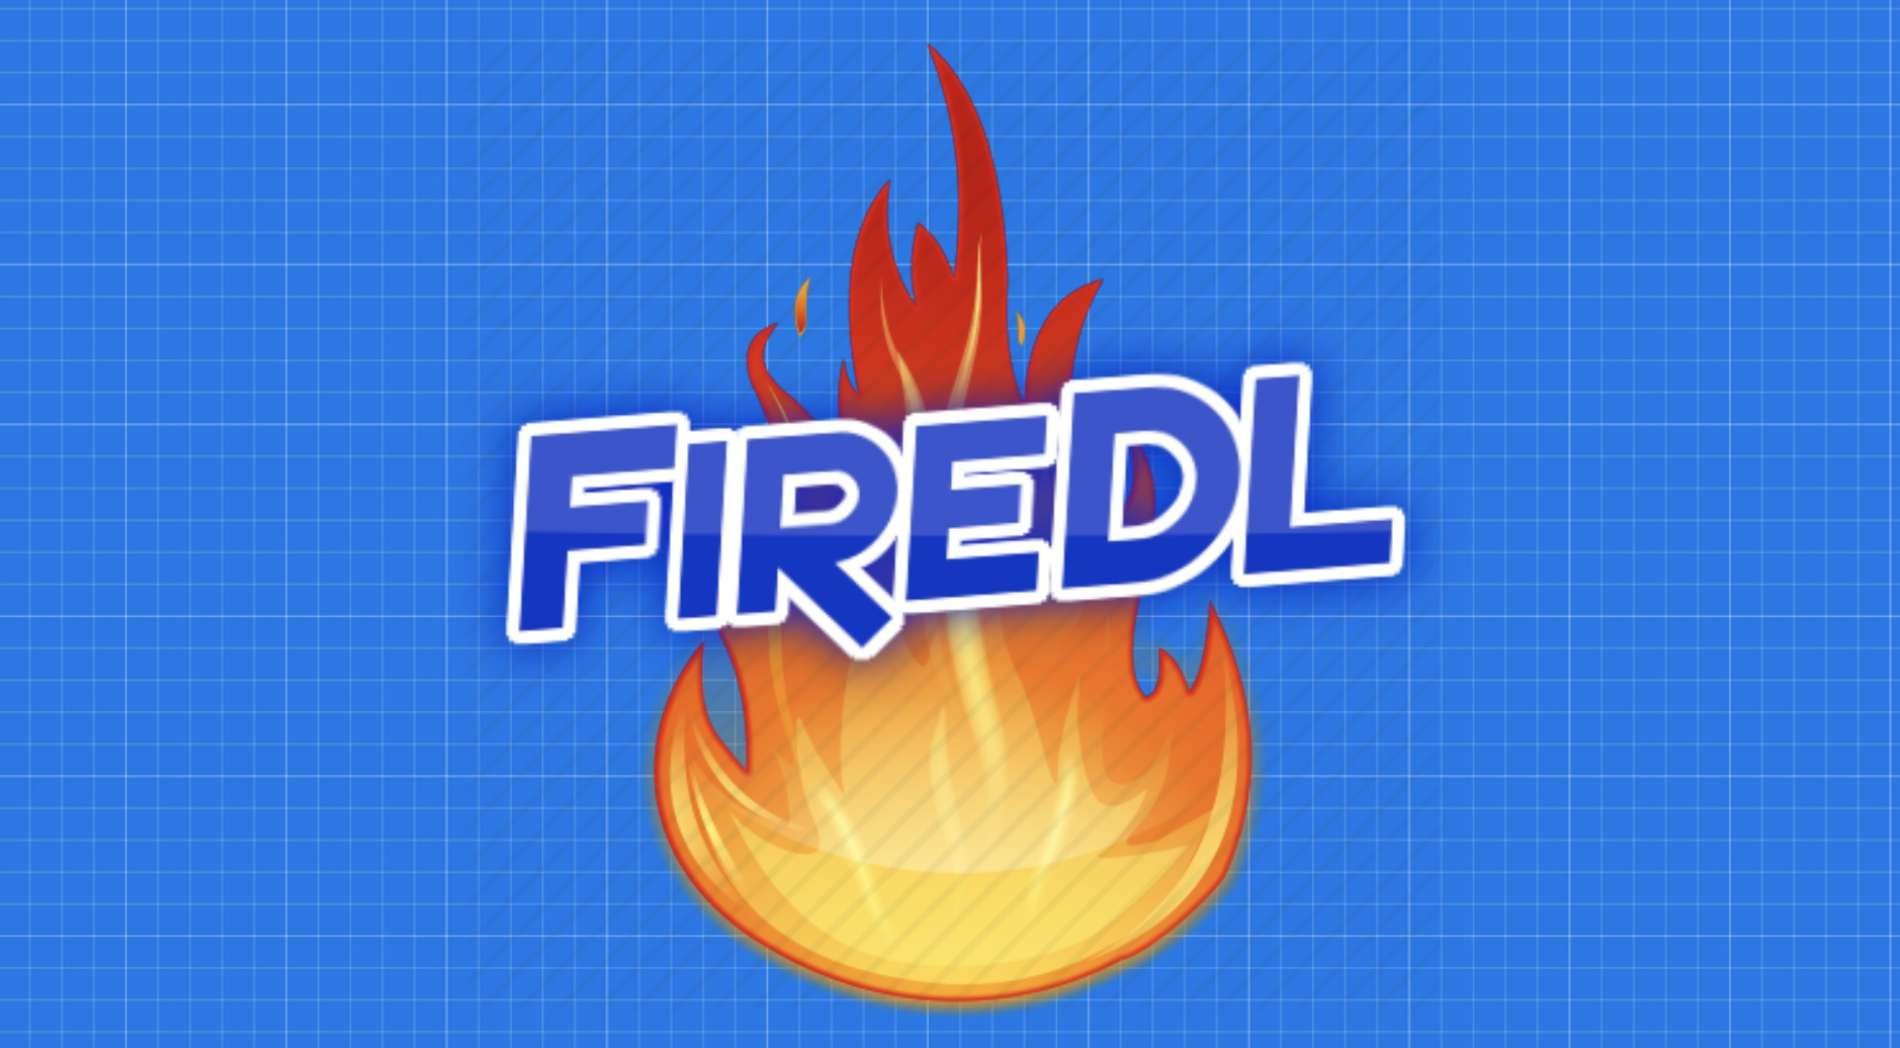 FireDL Firestick App How to Install in 2 Minutes